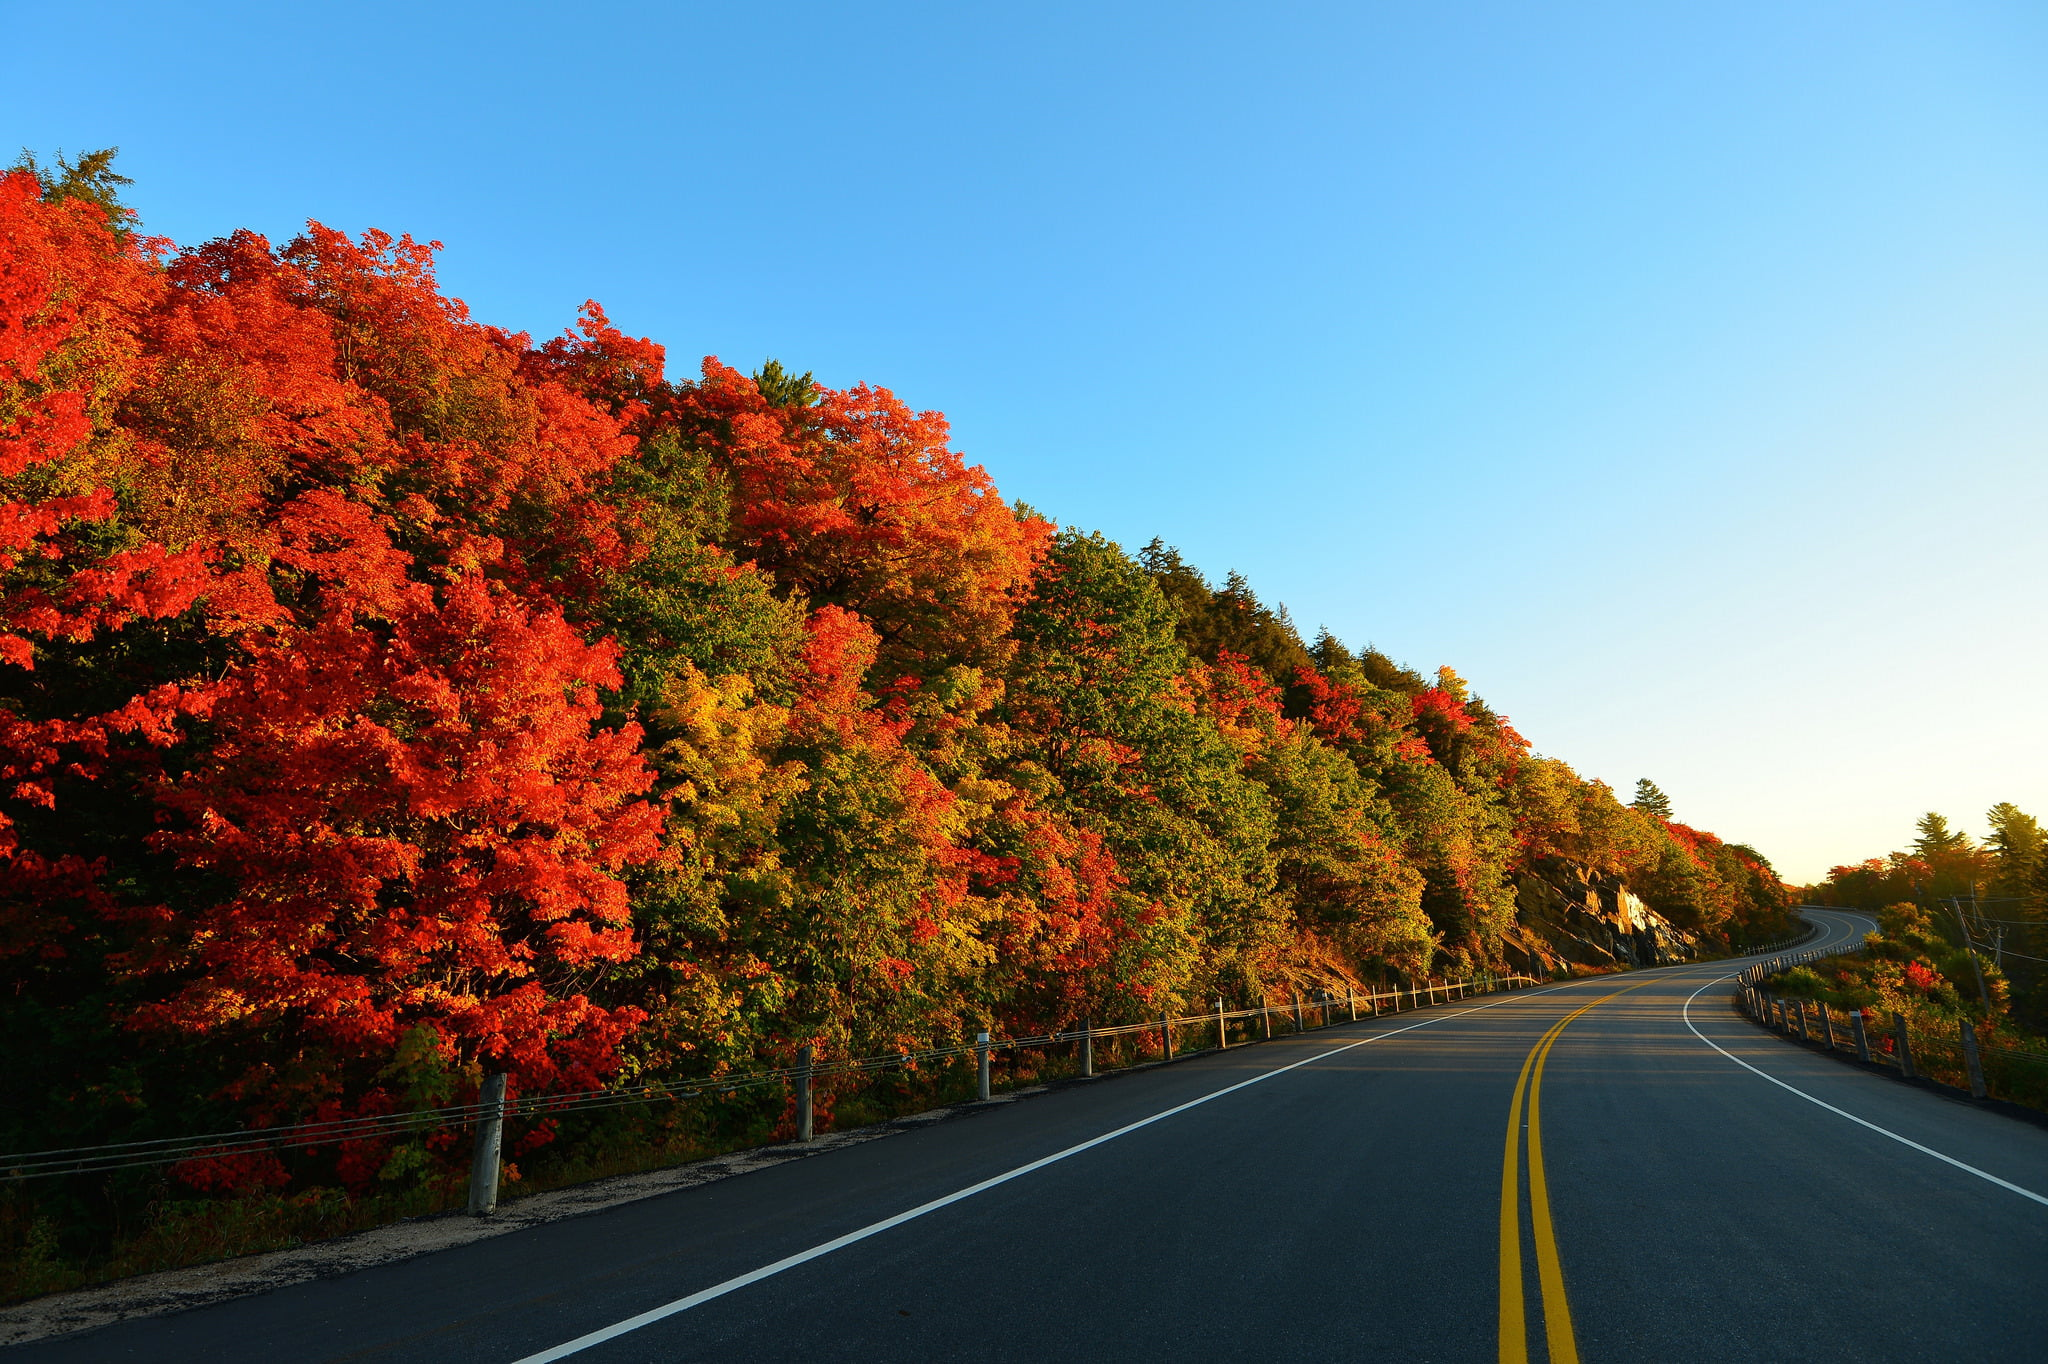 Green and red trees near gray concrete road HD wallpaper | Wallpaper ...